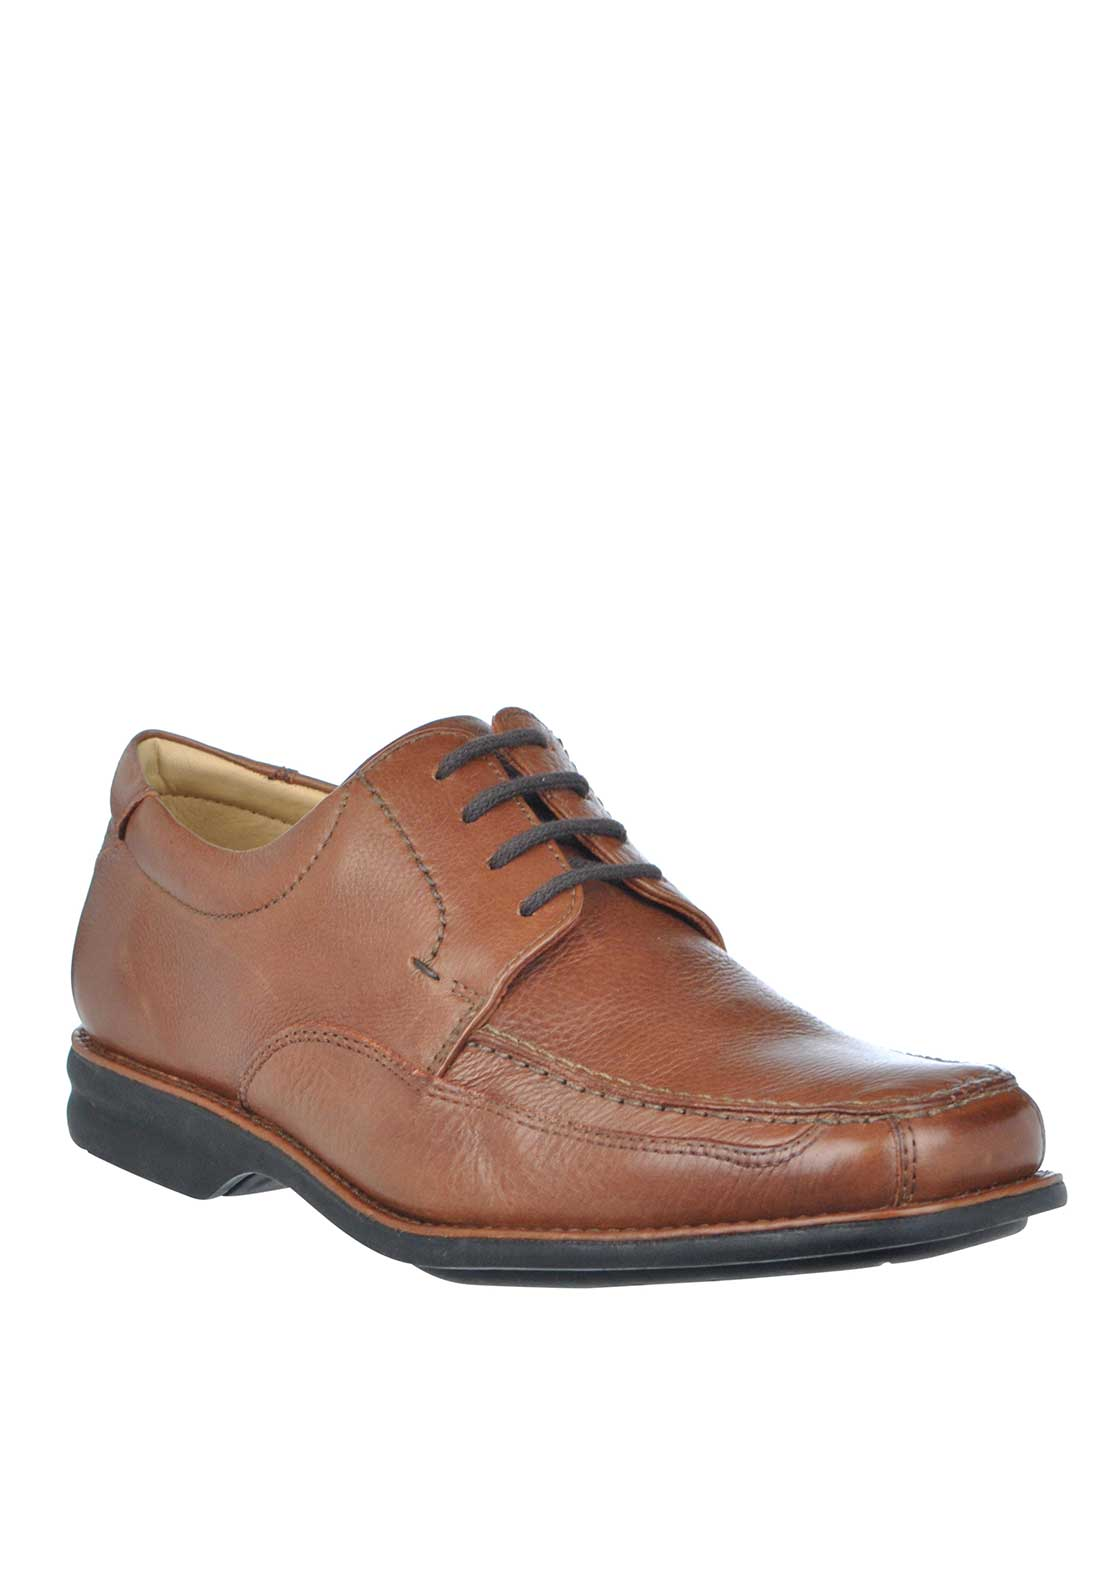 Anatomic & Co Goias Wide Fit Lace Up Leather Shoes, Brown